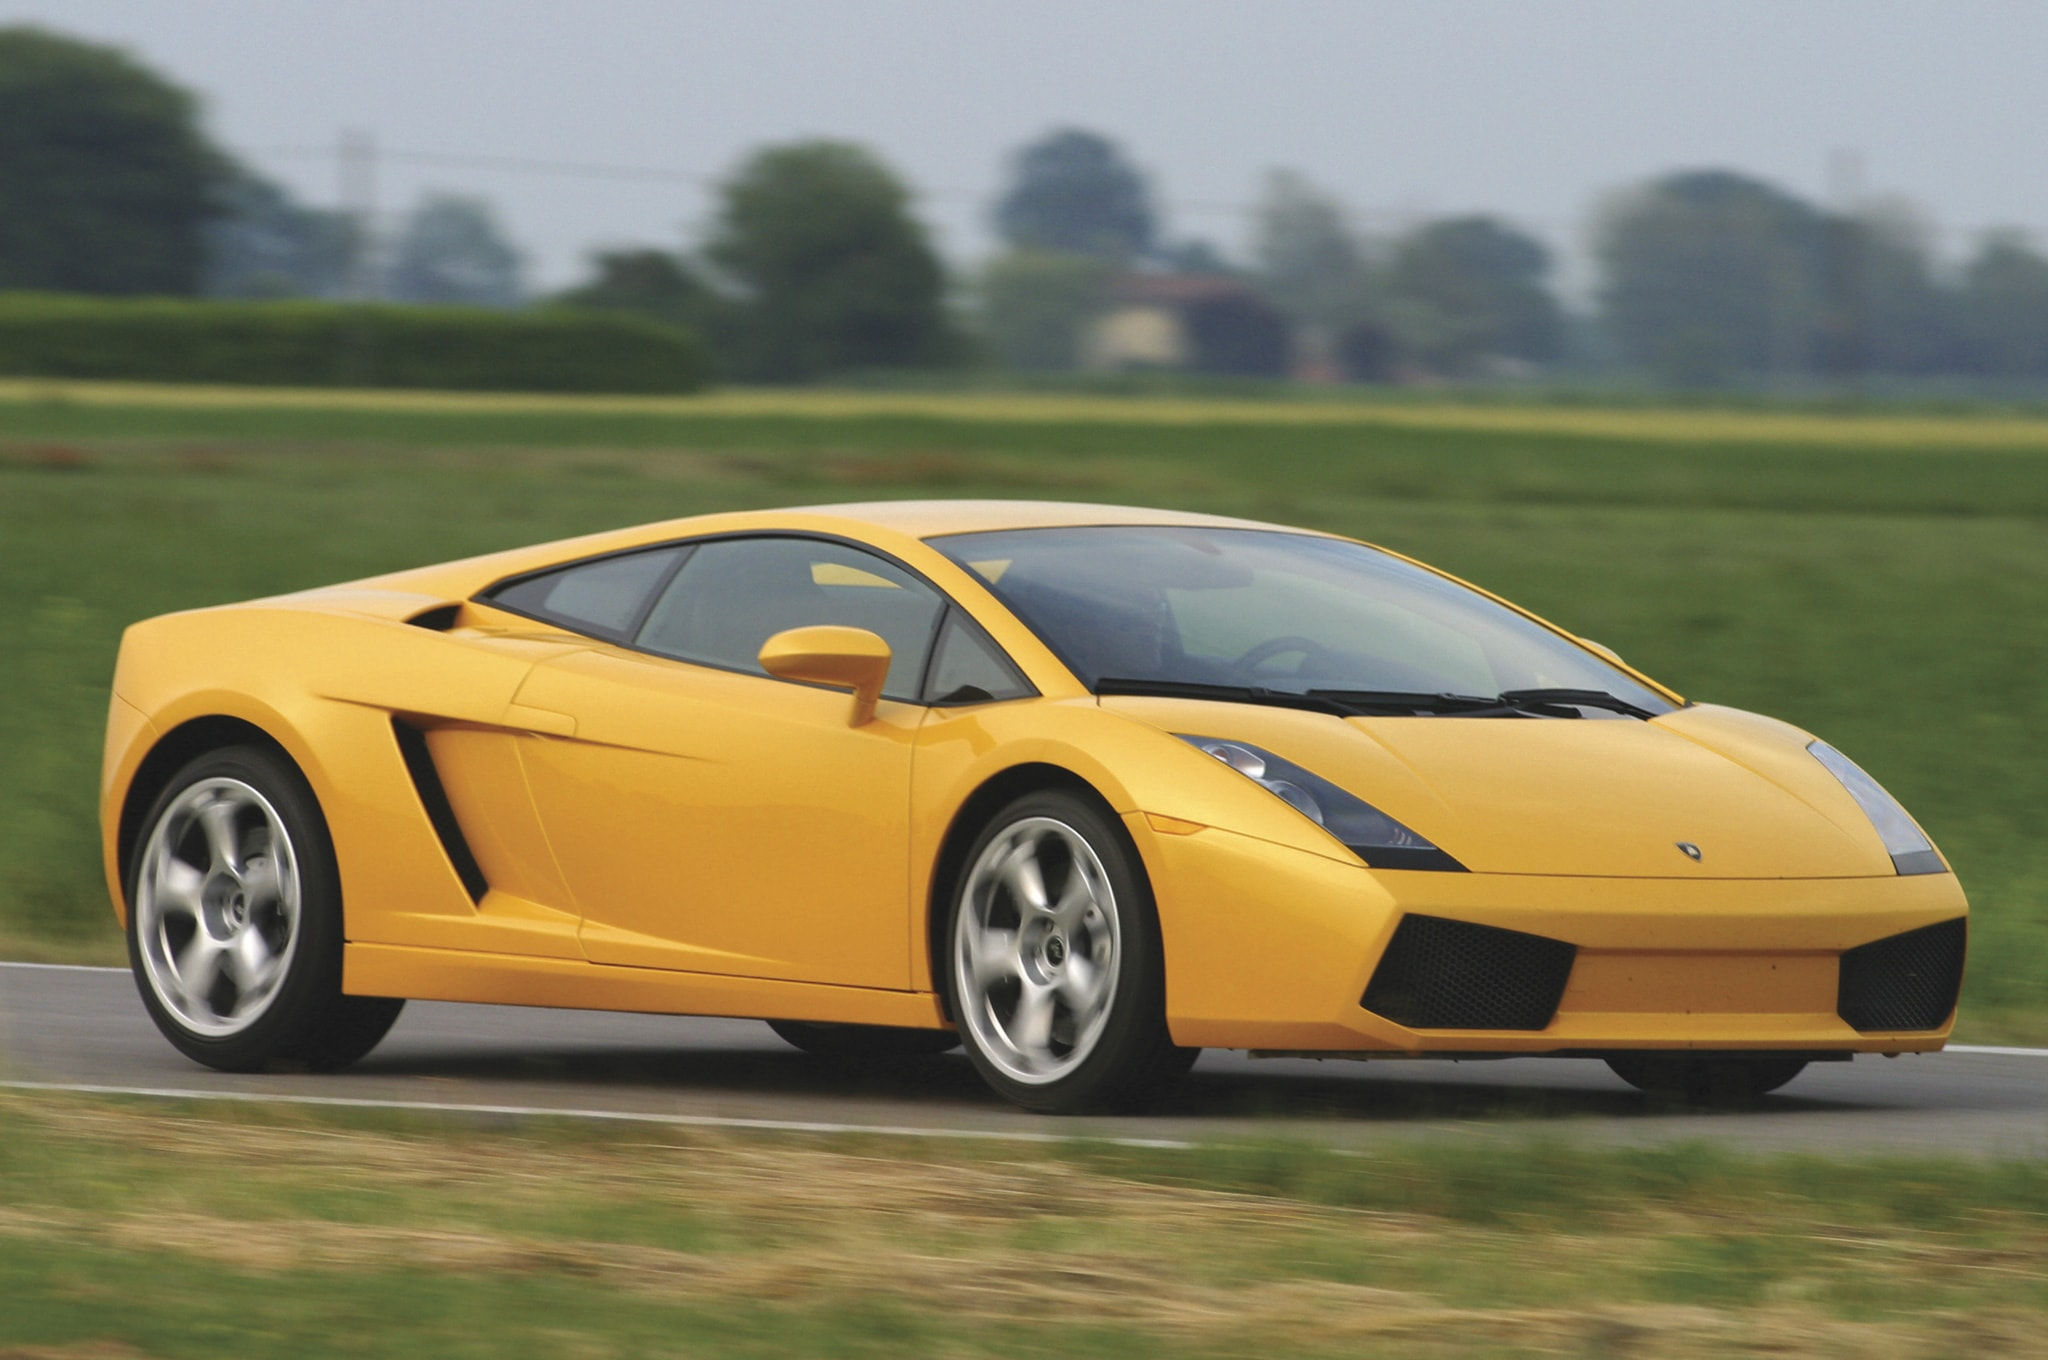 2003 Lamborghini Gallardo Full hd wallpapers